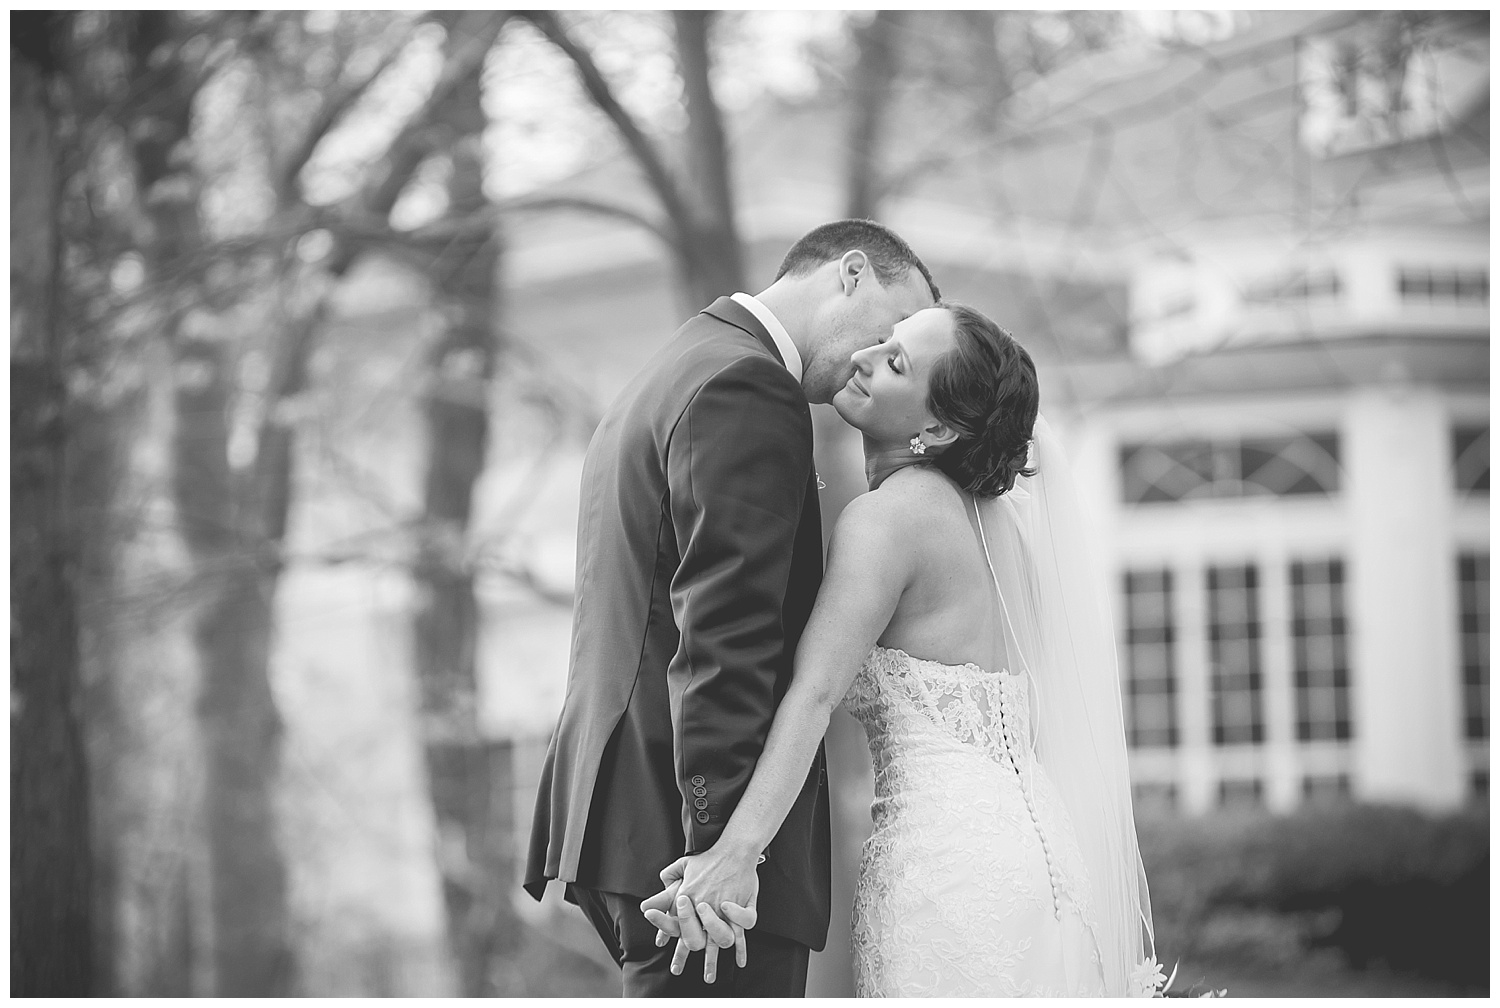 Amy & Greg – Tupper Manor Wedding